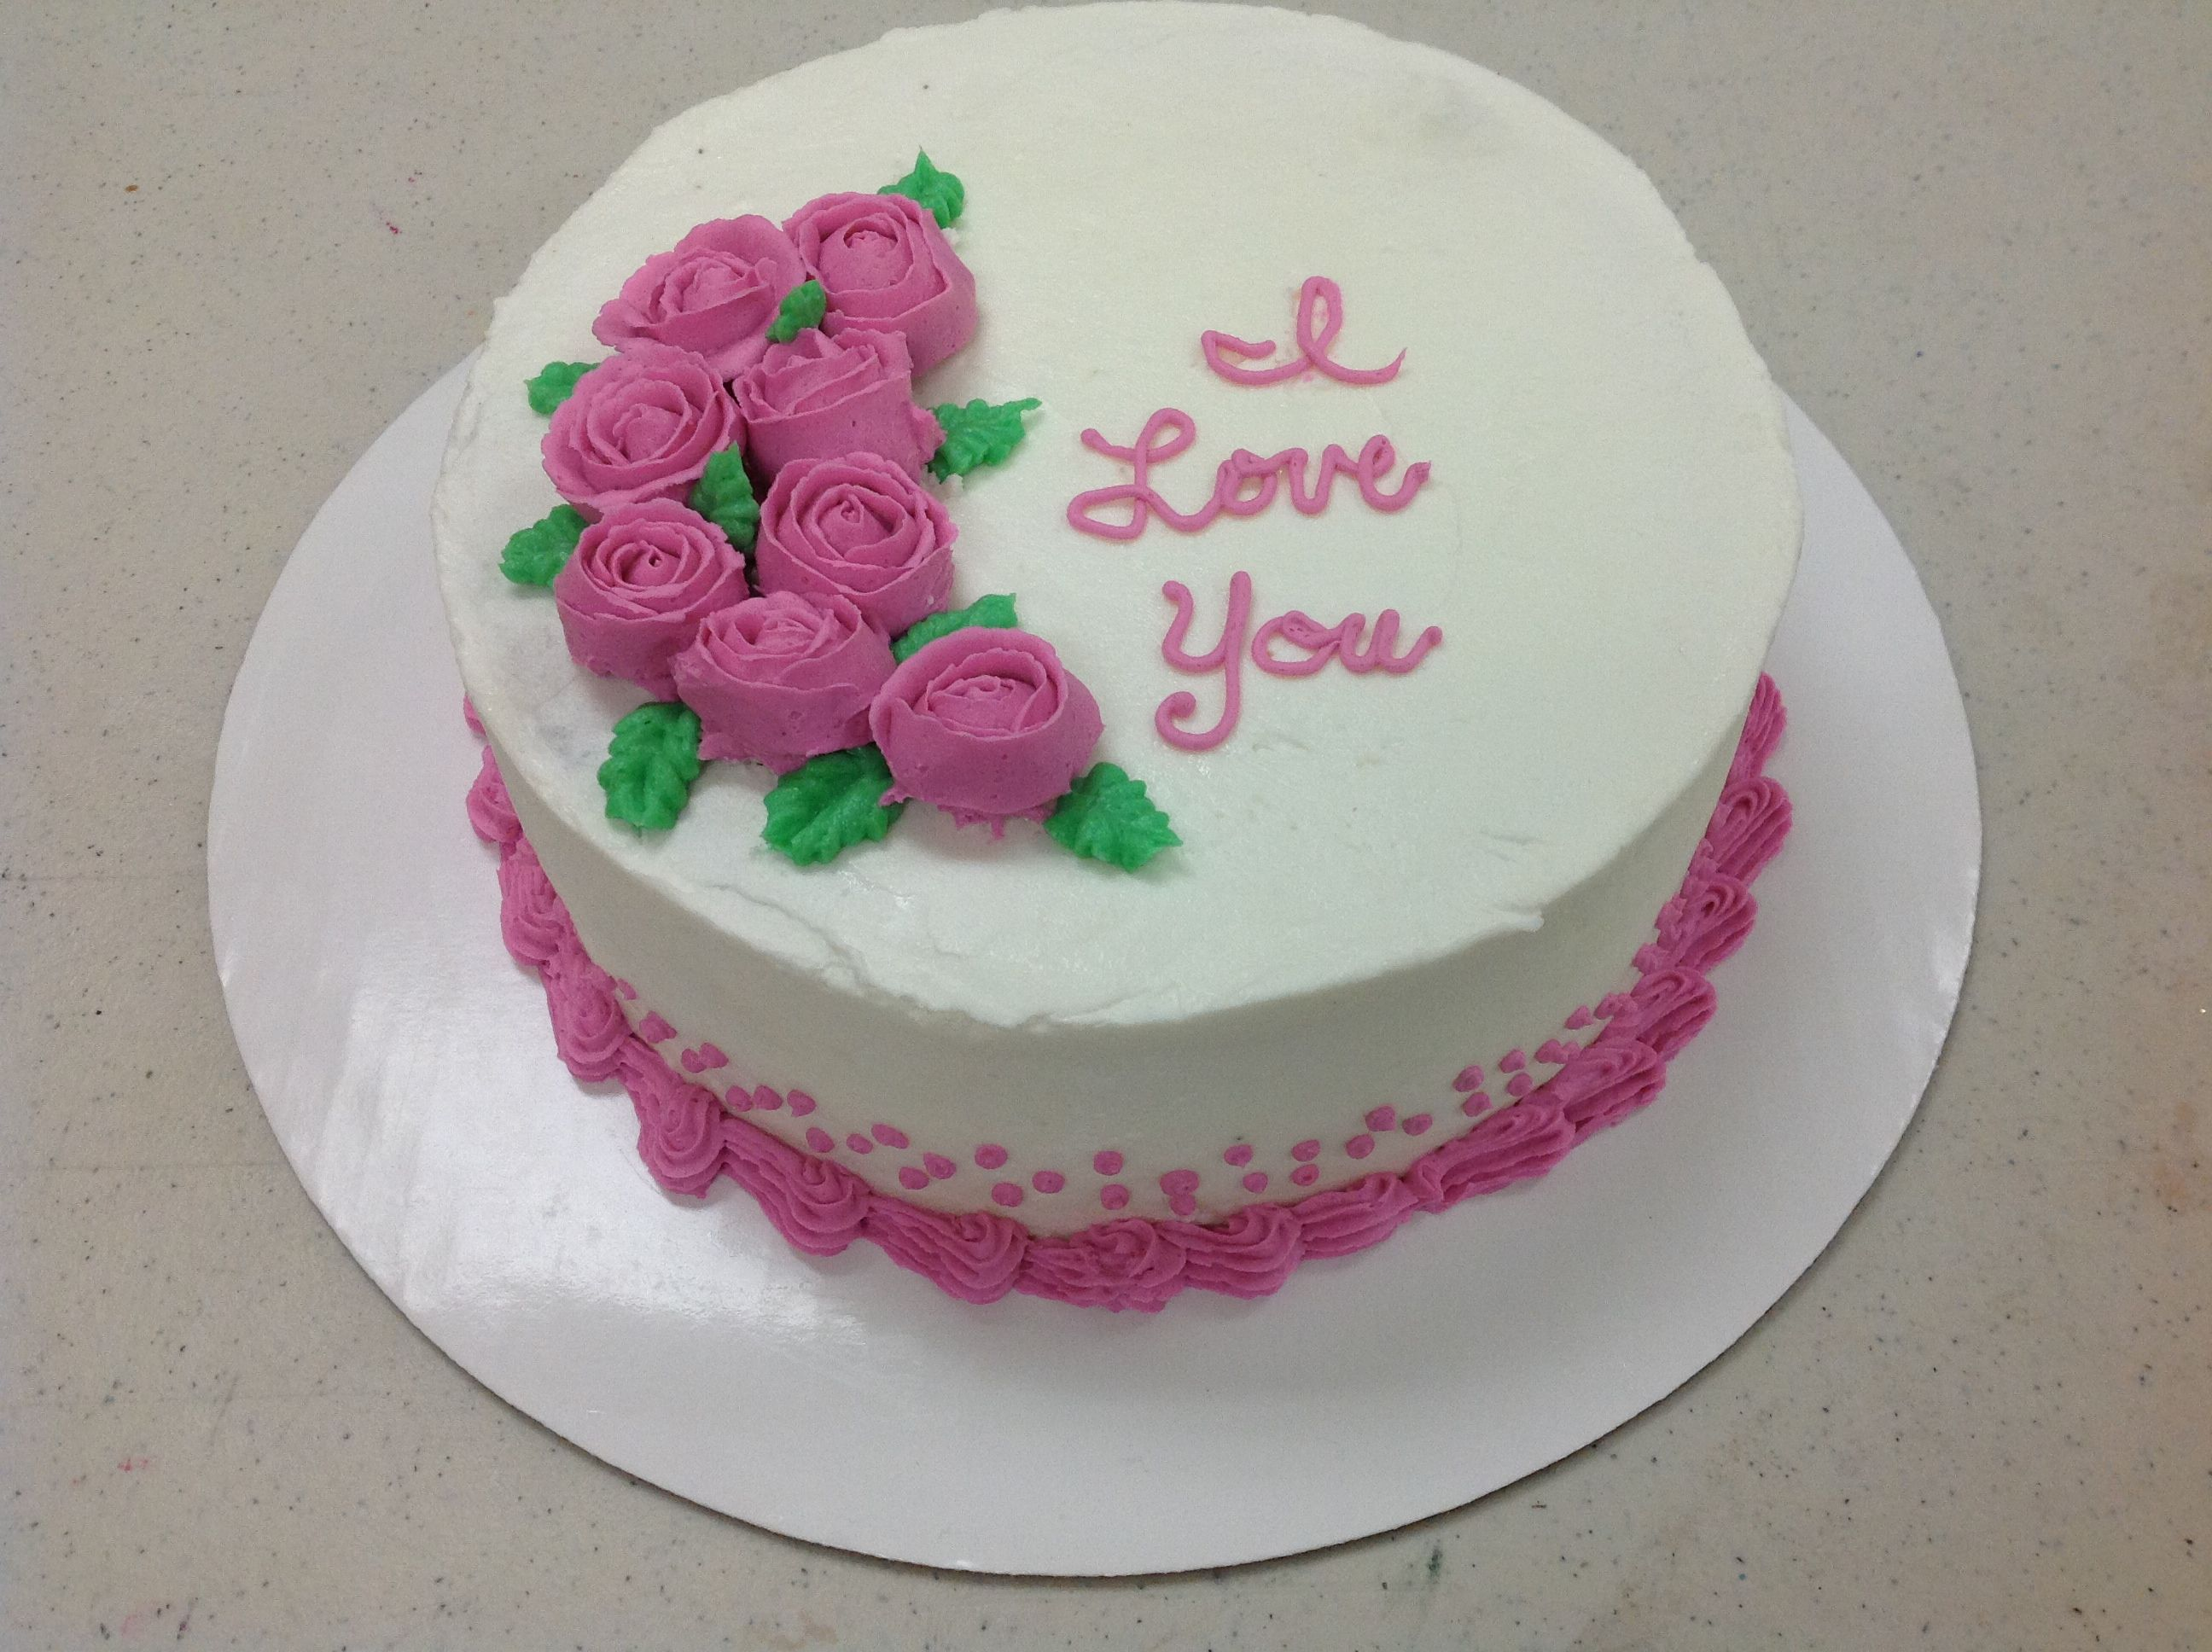 Gretchen Heiar Made A Beautiful Rose Cake In Course 1 Decorating